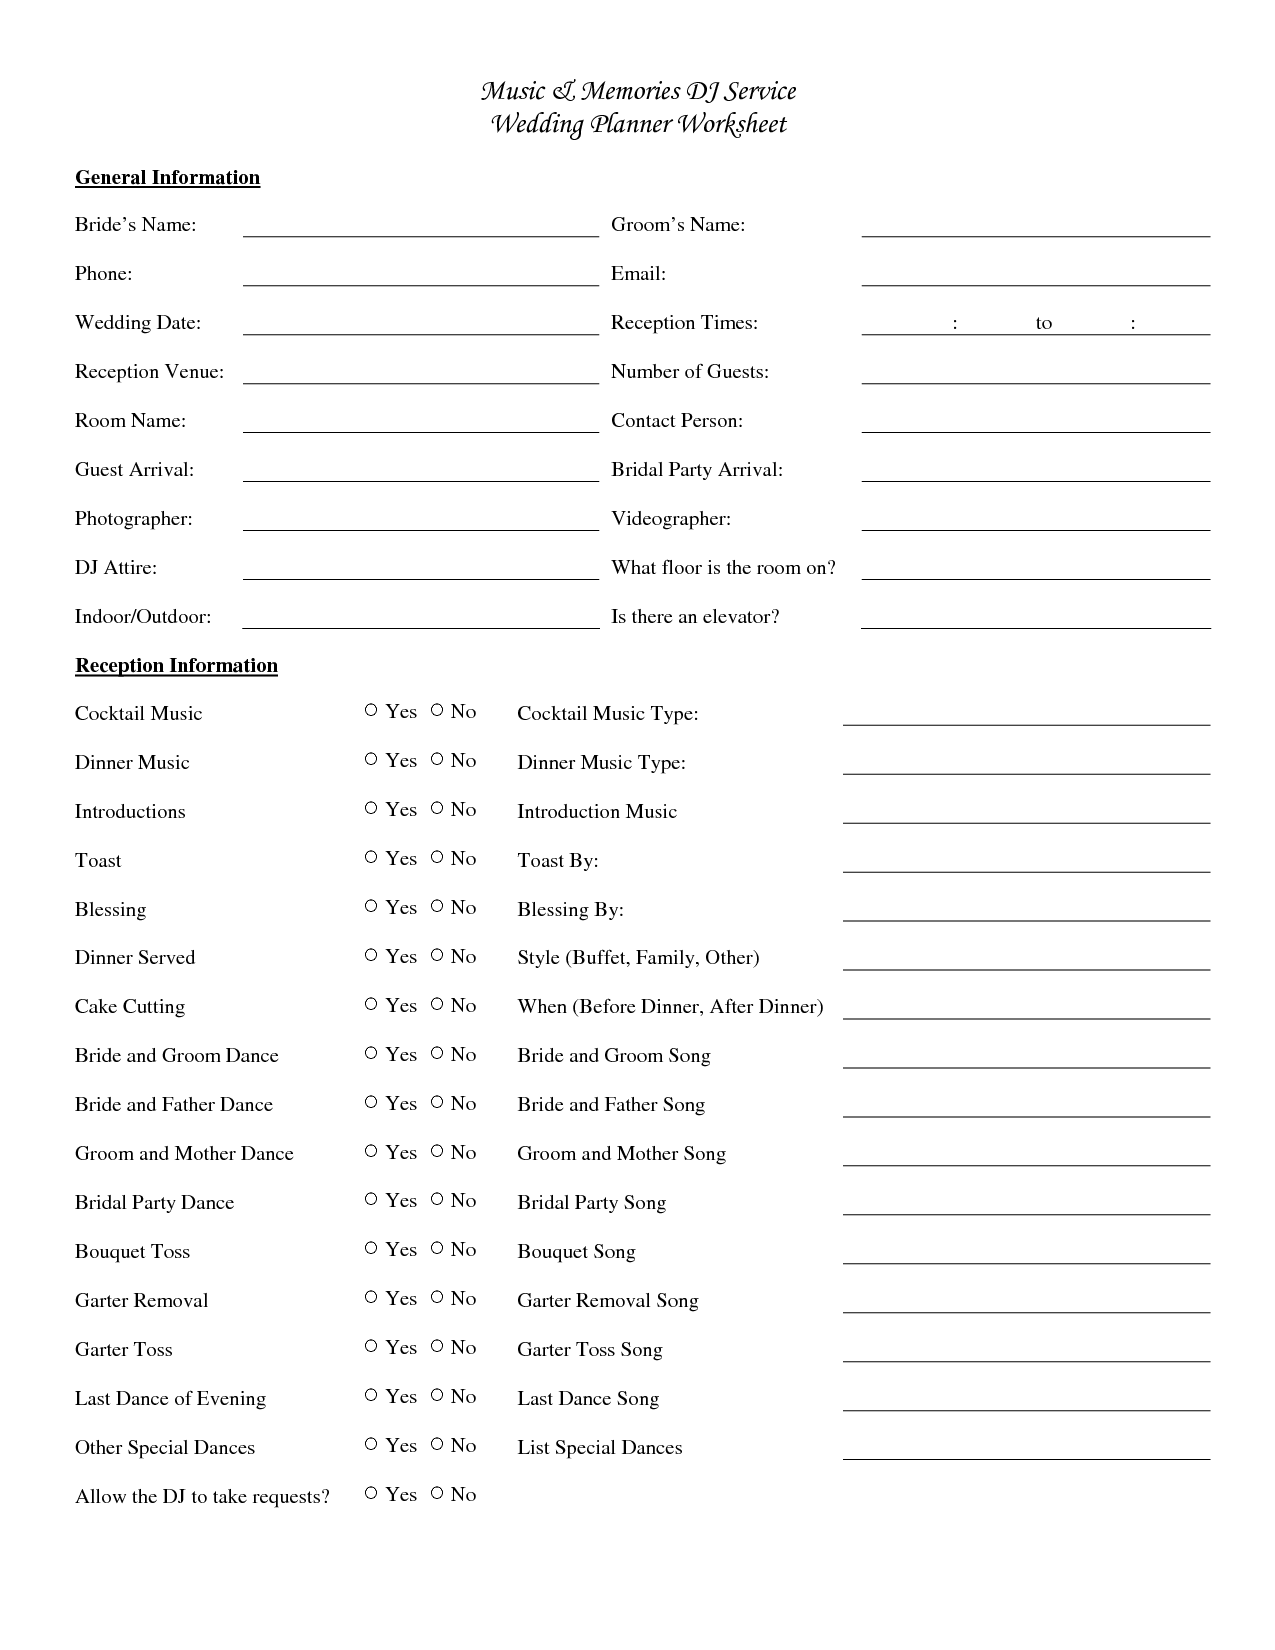 wedding dj checklist Music Memories DJ Service Wedding Planner